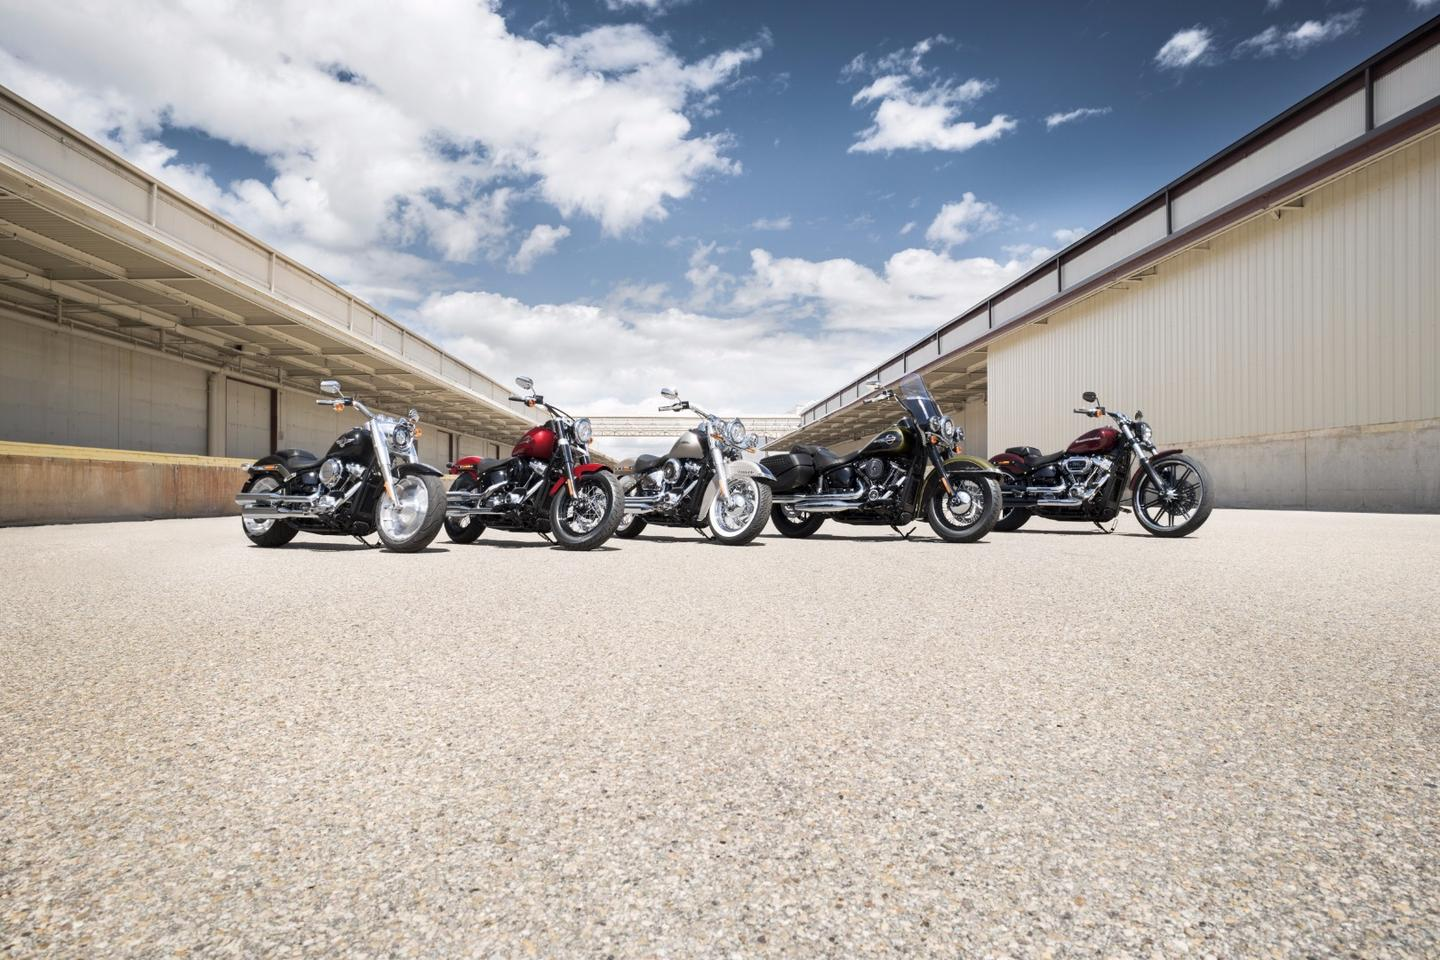 Harley-Davidson introduces the 2018 Softail model family with new engine, frame and suspensions